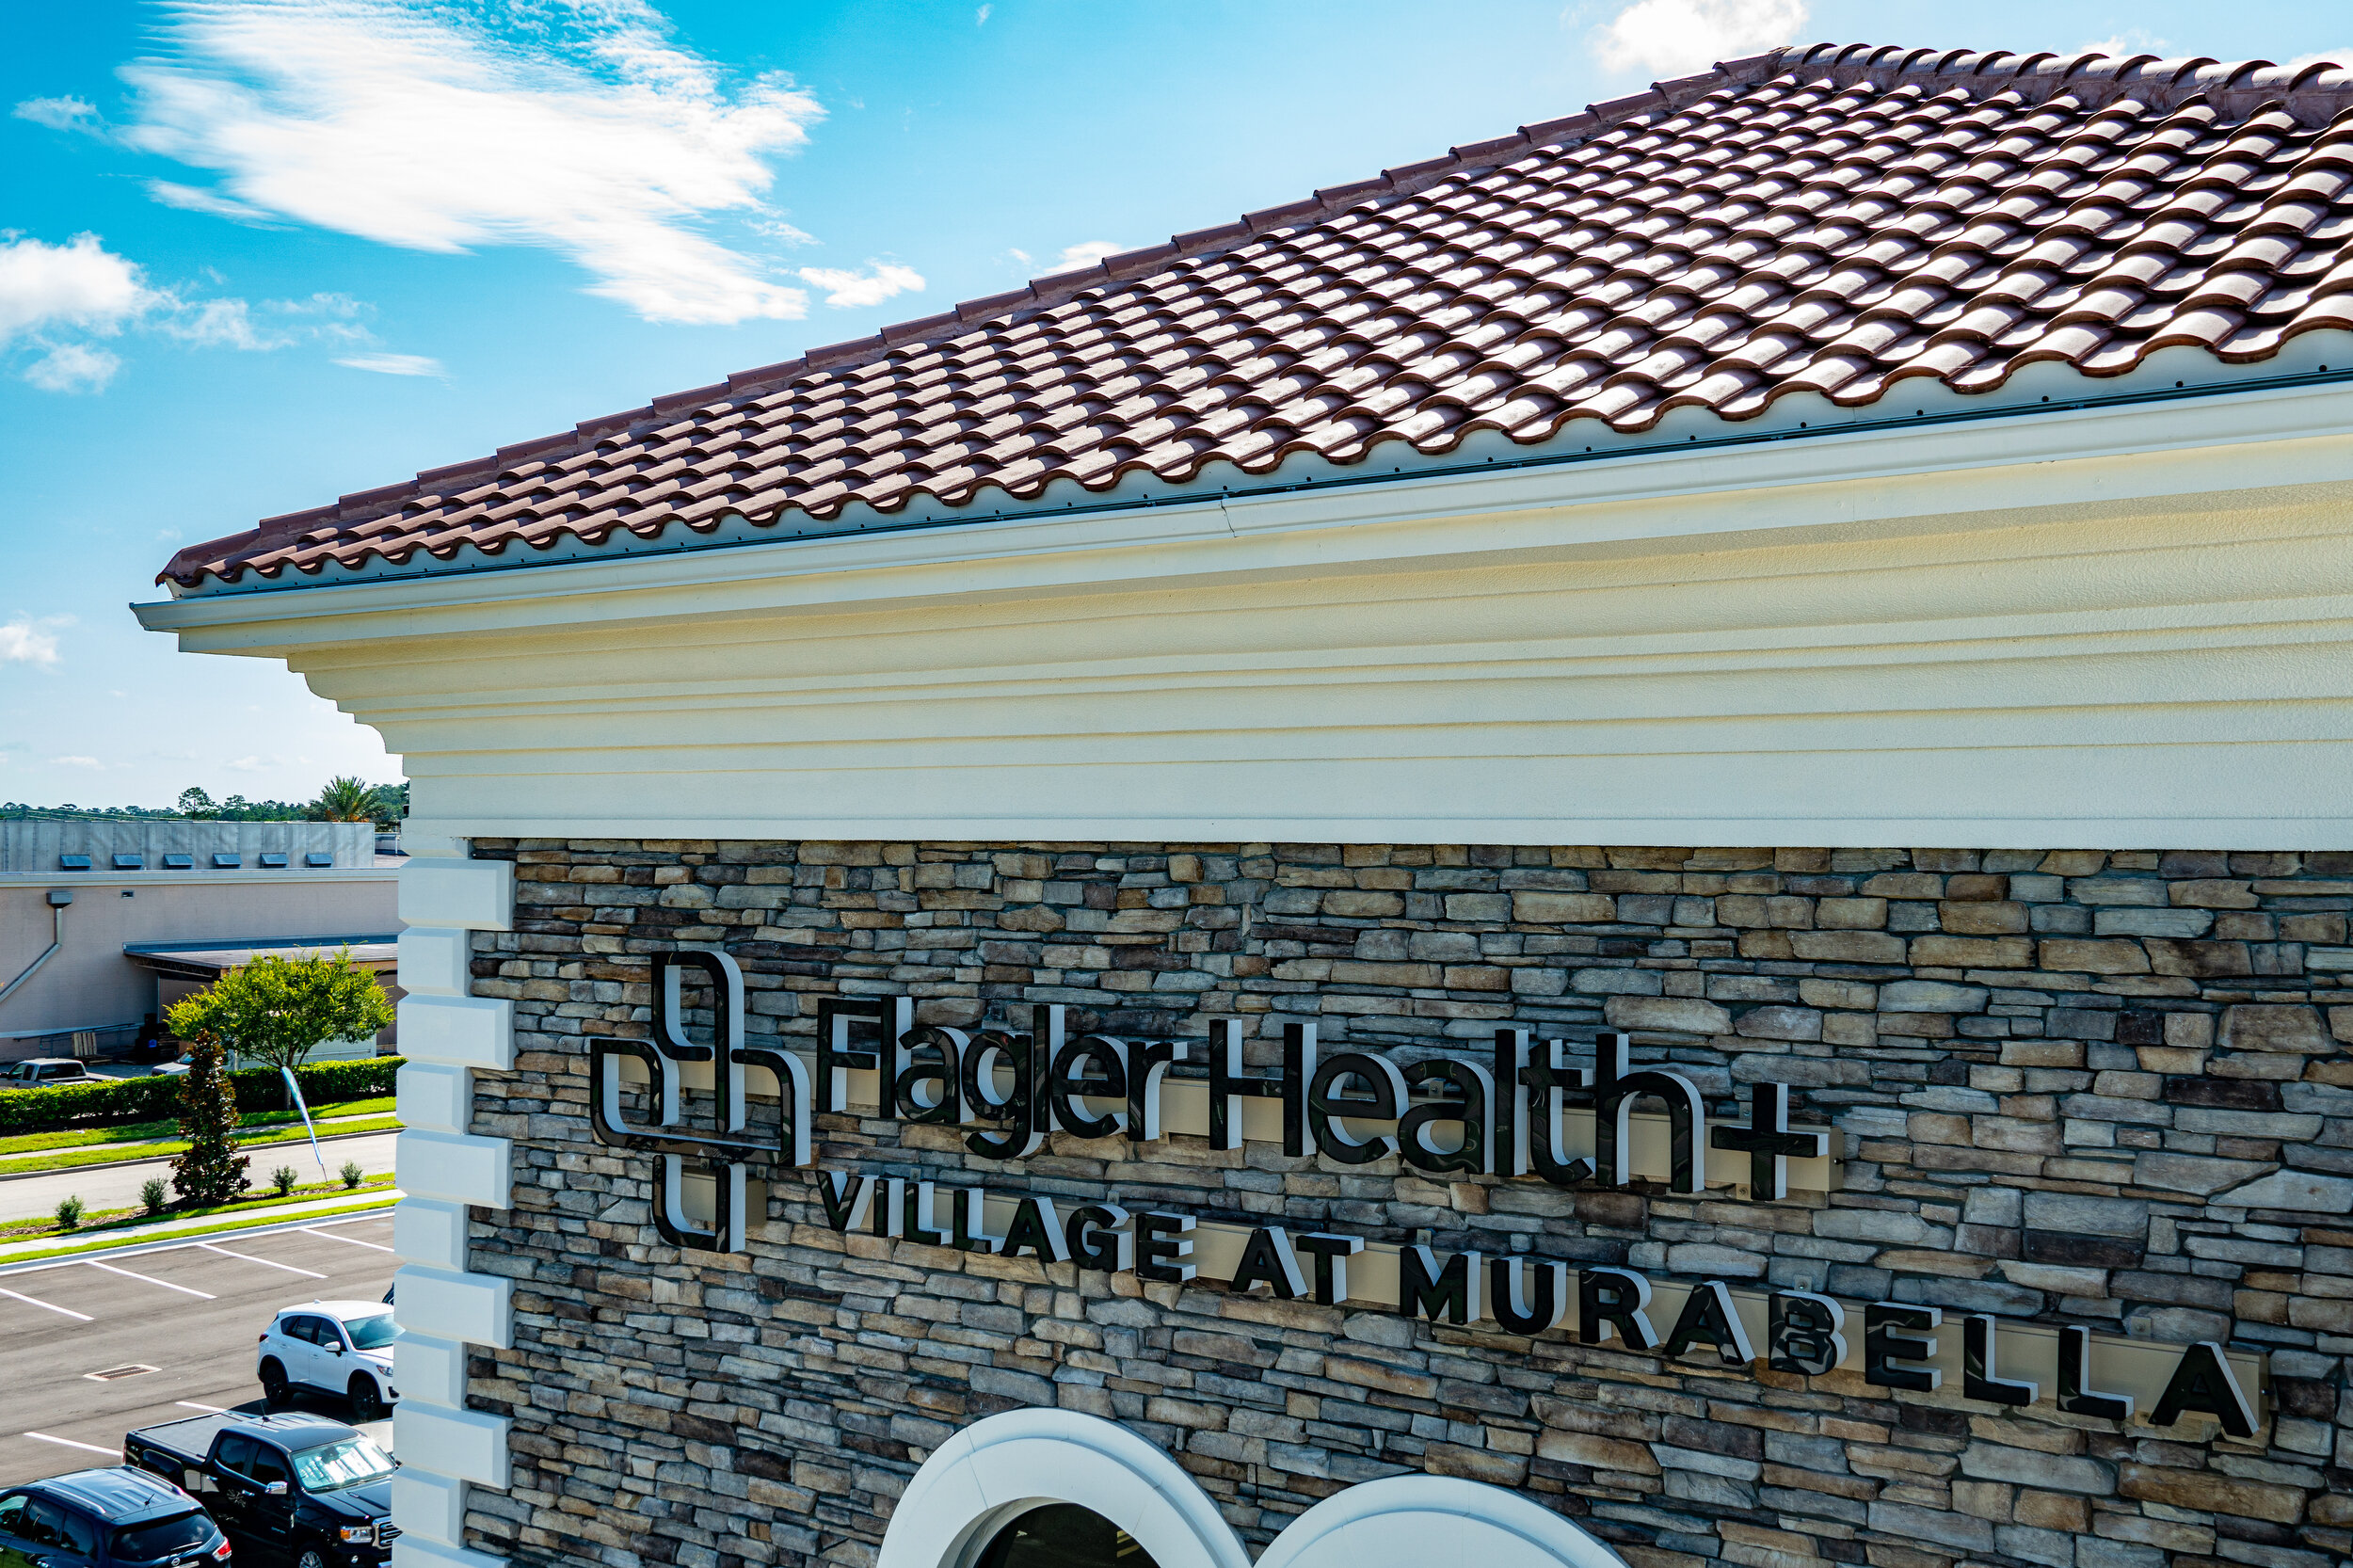 The Flagler Health project, designed and built by Pratt Guys in 2019 - Photo owned by Pratt Guys - NOTE: Can ONLY be used online, digitally, TV and print WITH written permission from Pratt Guys. (PrattGuys.com) - Photo was taken on July 23, 2019.